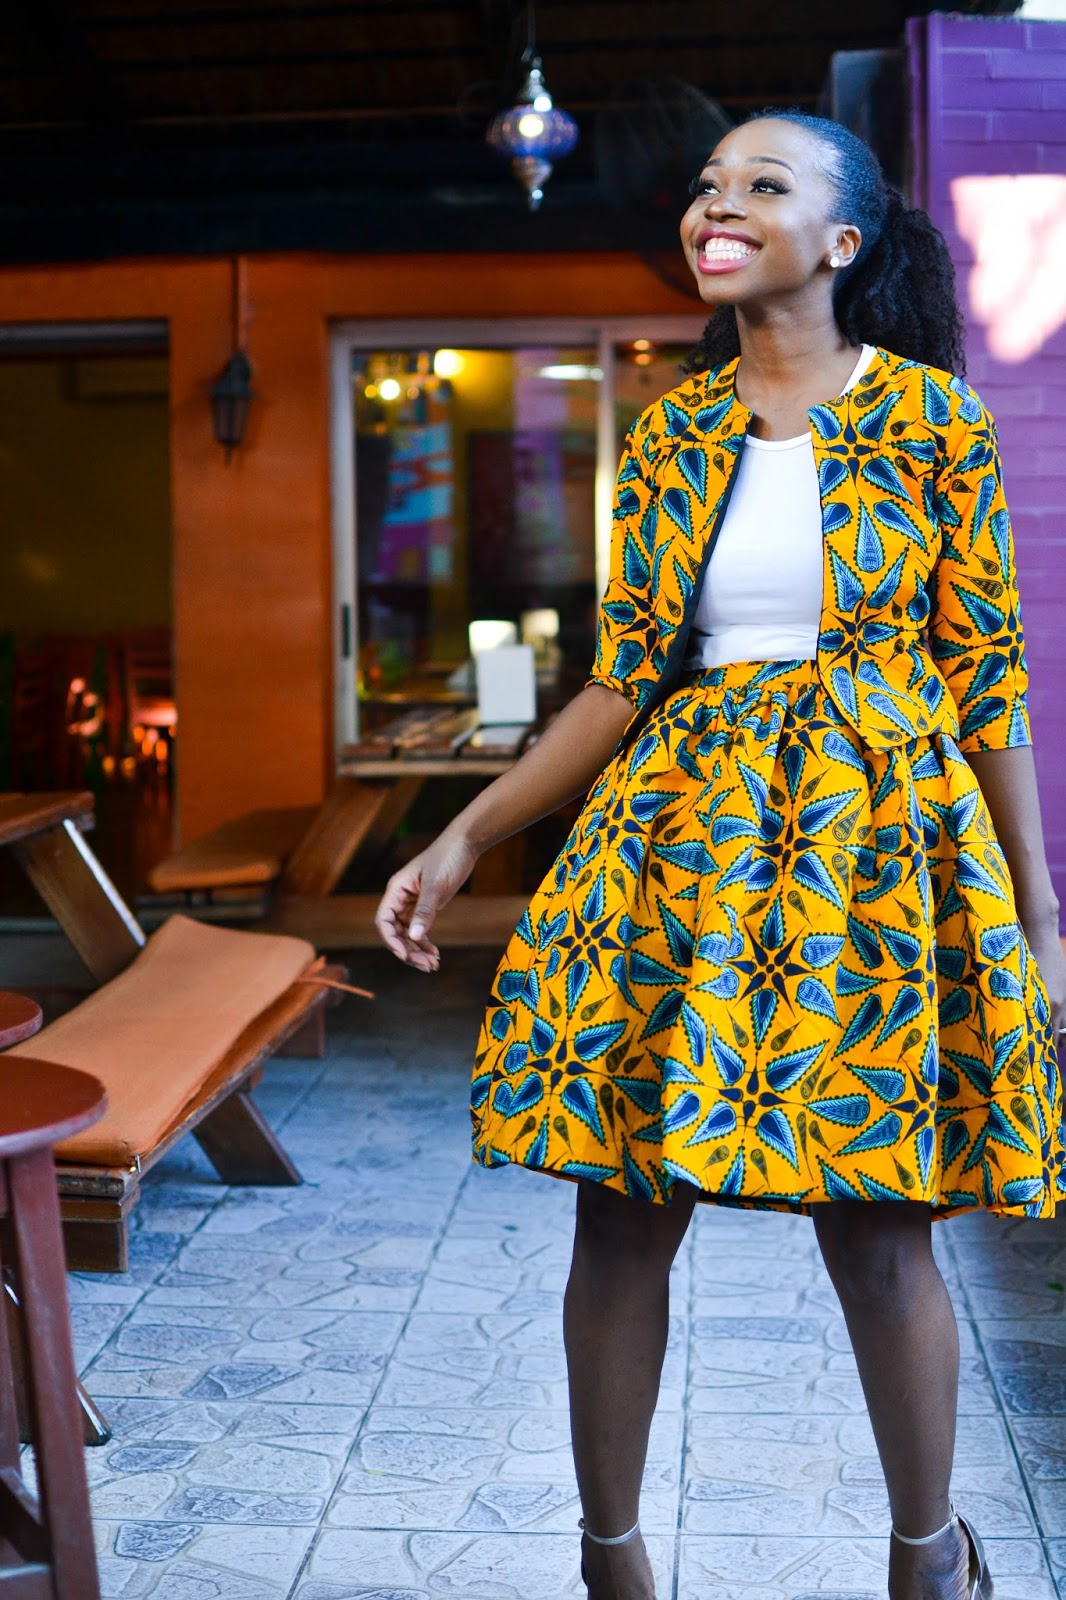 Vibrant Prints on a Nigerian Fashion Blogger